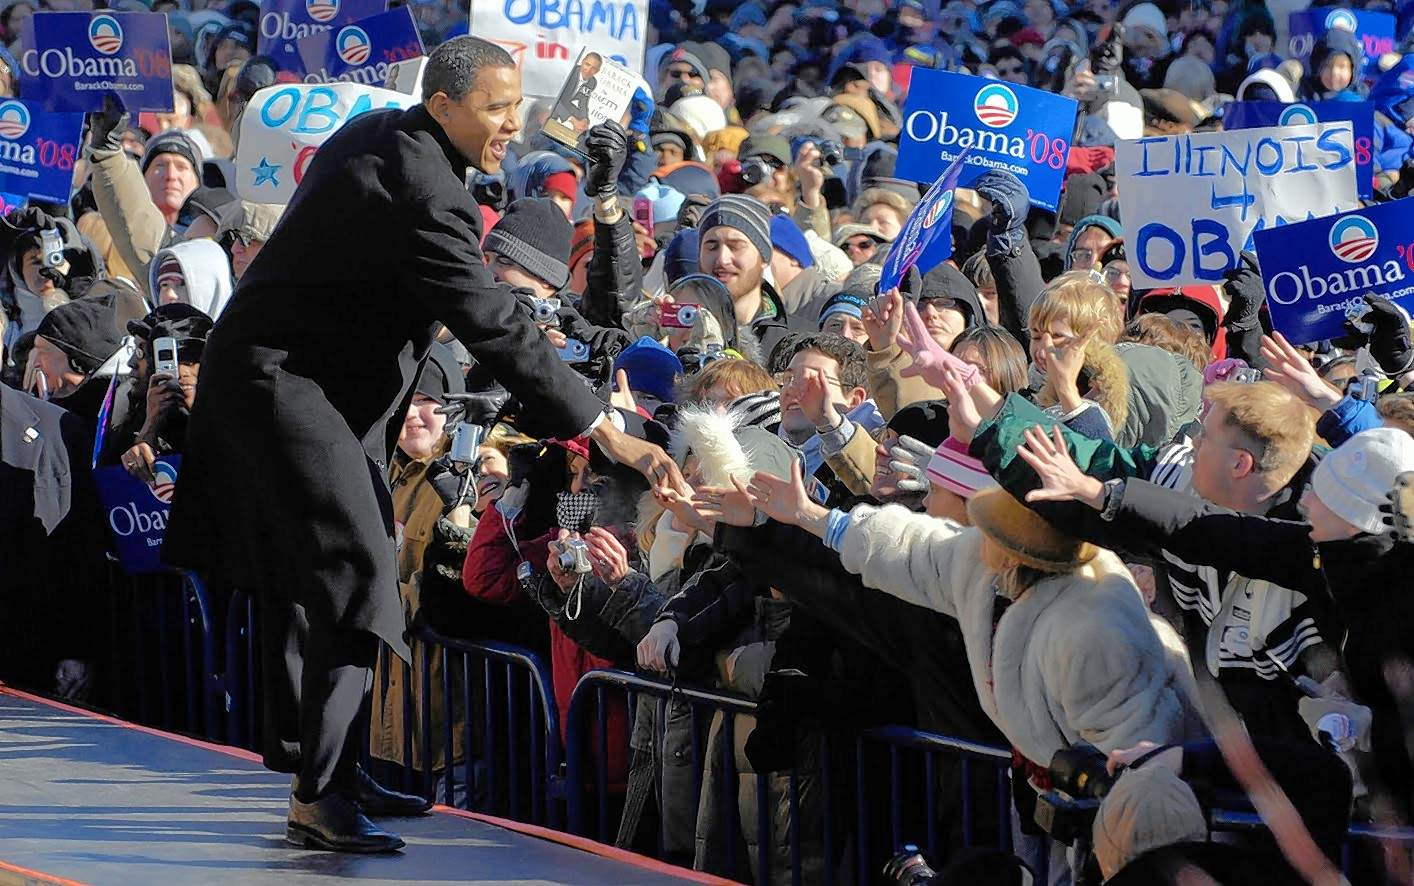 U.S. Sen. Barack Obama, D-Ill., greets a large crowd gathered at the Old State Capitol in Springfield on Feb. 10, 2007, moments before announcing his candidacy for the 2008 Democratic presidential nomination.